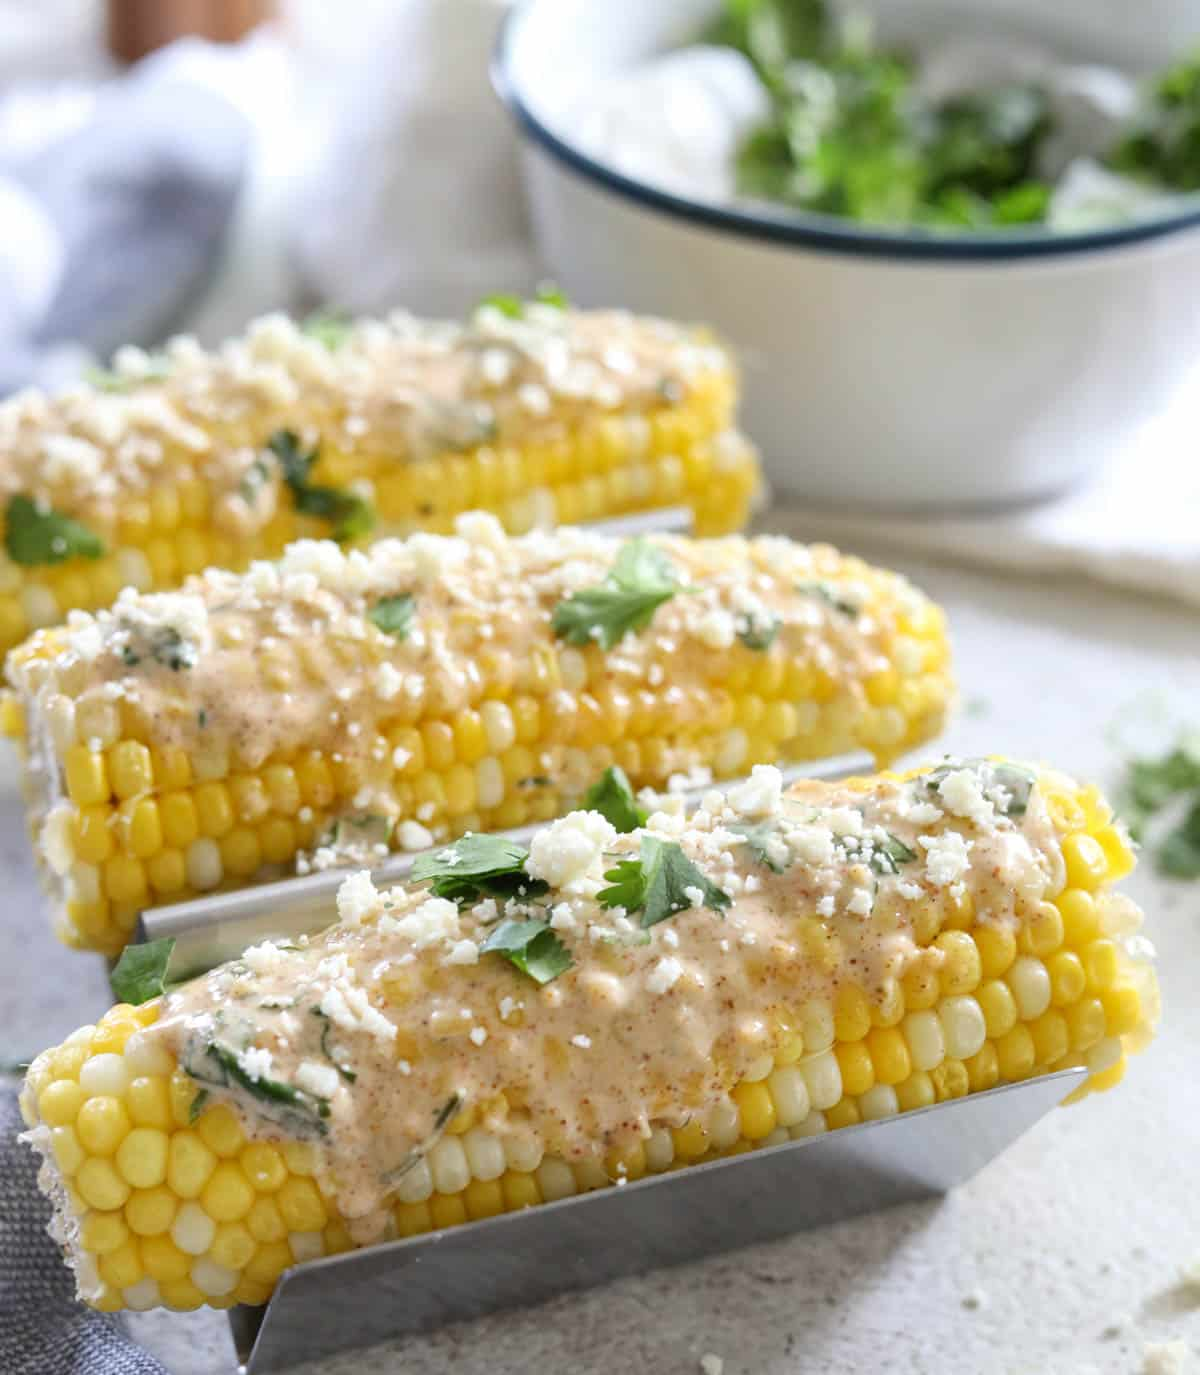 Mexican street corn on table with ingredients